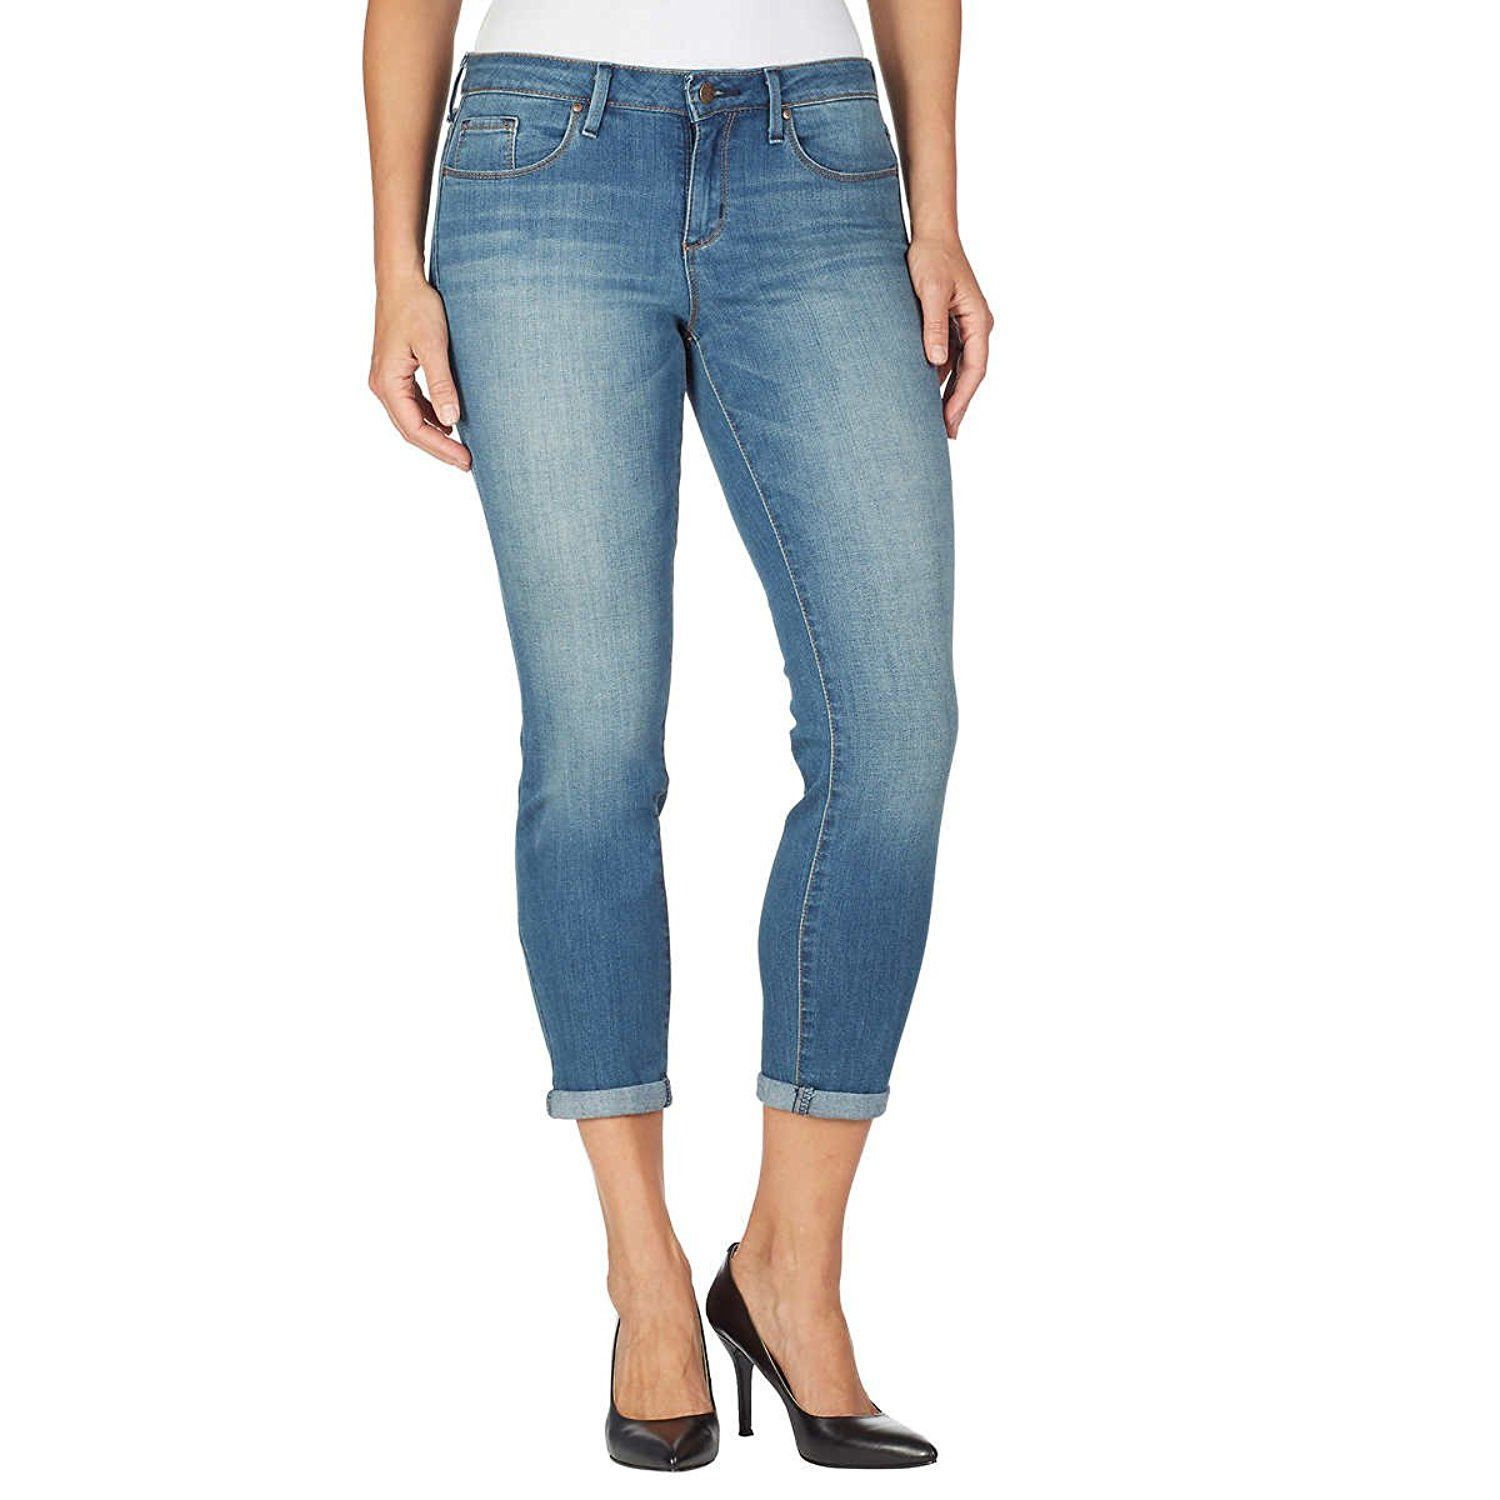 e134c36f46f Jessica Simpson Rolled Crop Skinny Jeans